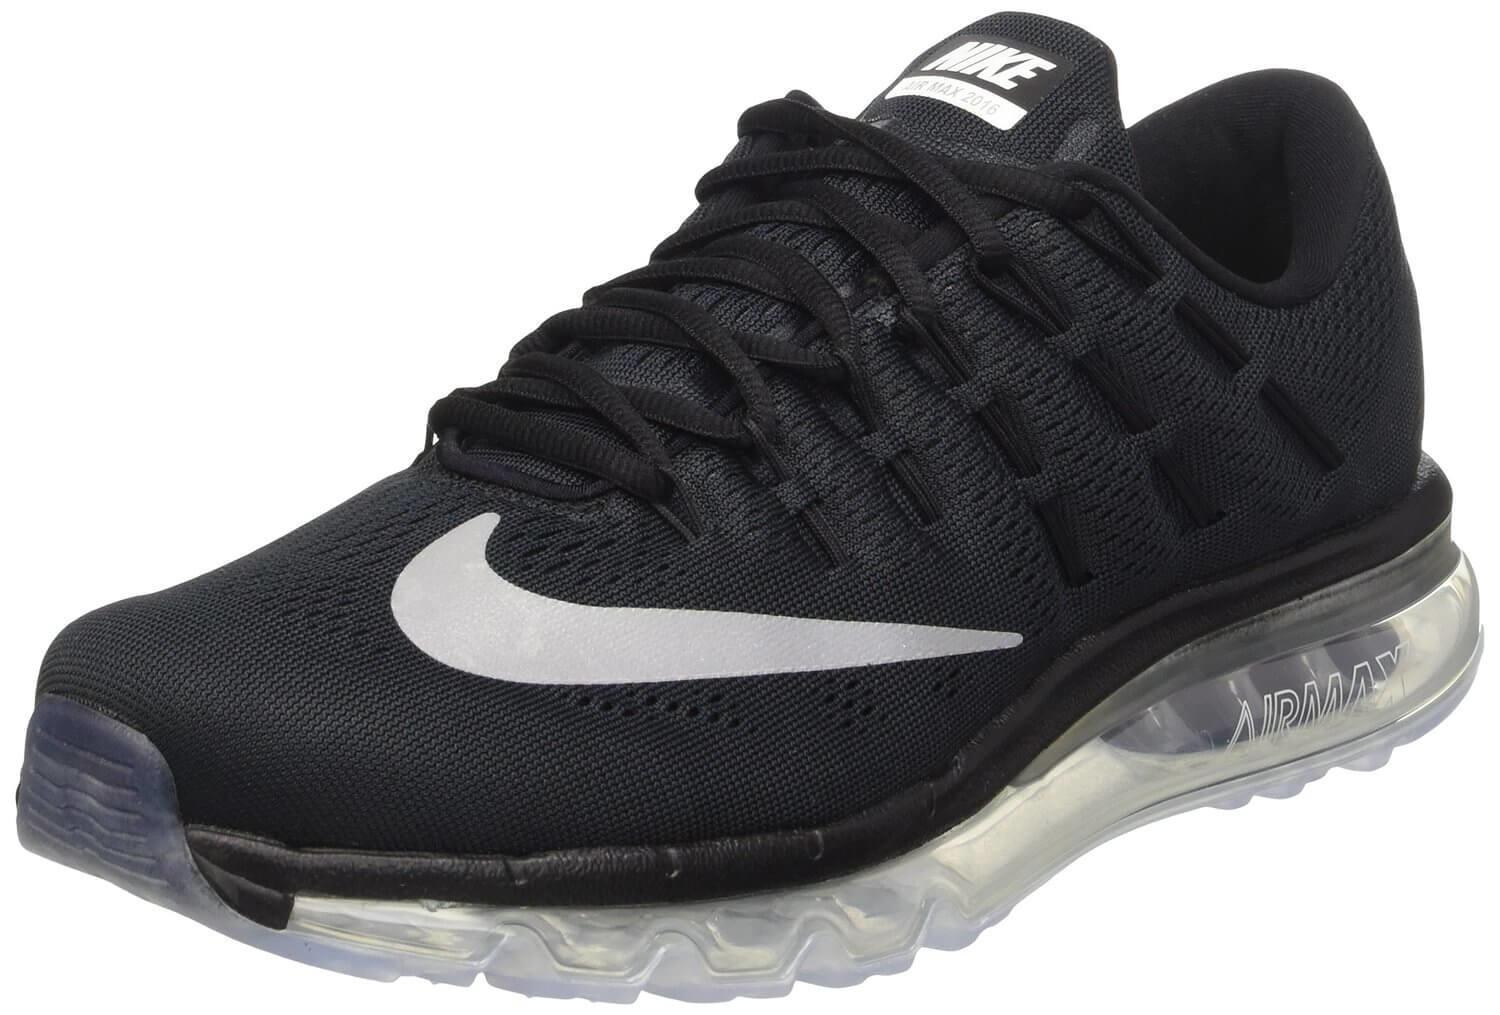 moins cher 02b13 790e5 Nike Air Max 2016 Reviewed & Rated for Quality